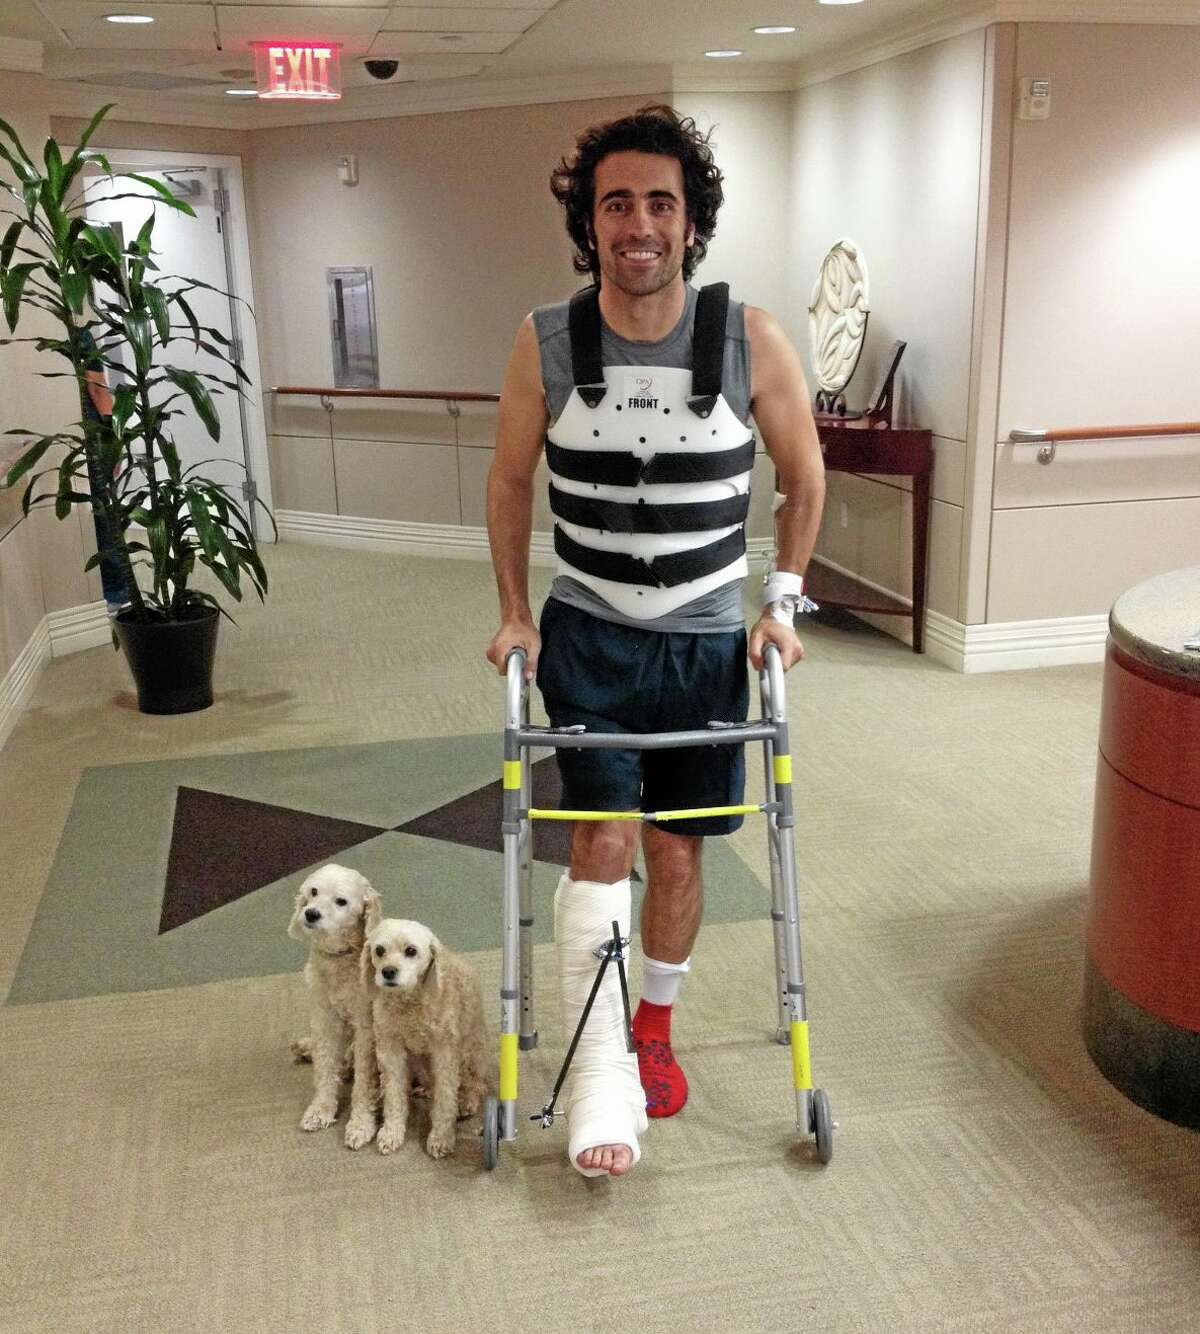 In this photo provided by Team Chip Ganassi Racing, IndyCar driver Dario Franchitti poses with his dogs, Shug and Buttermilk, in a photo taken by his brother, Marino Franchitti, at Memorial Hermann-Texas Medical Center in Houston on Thursday.